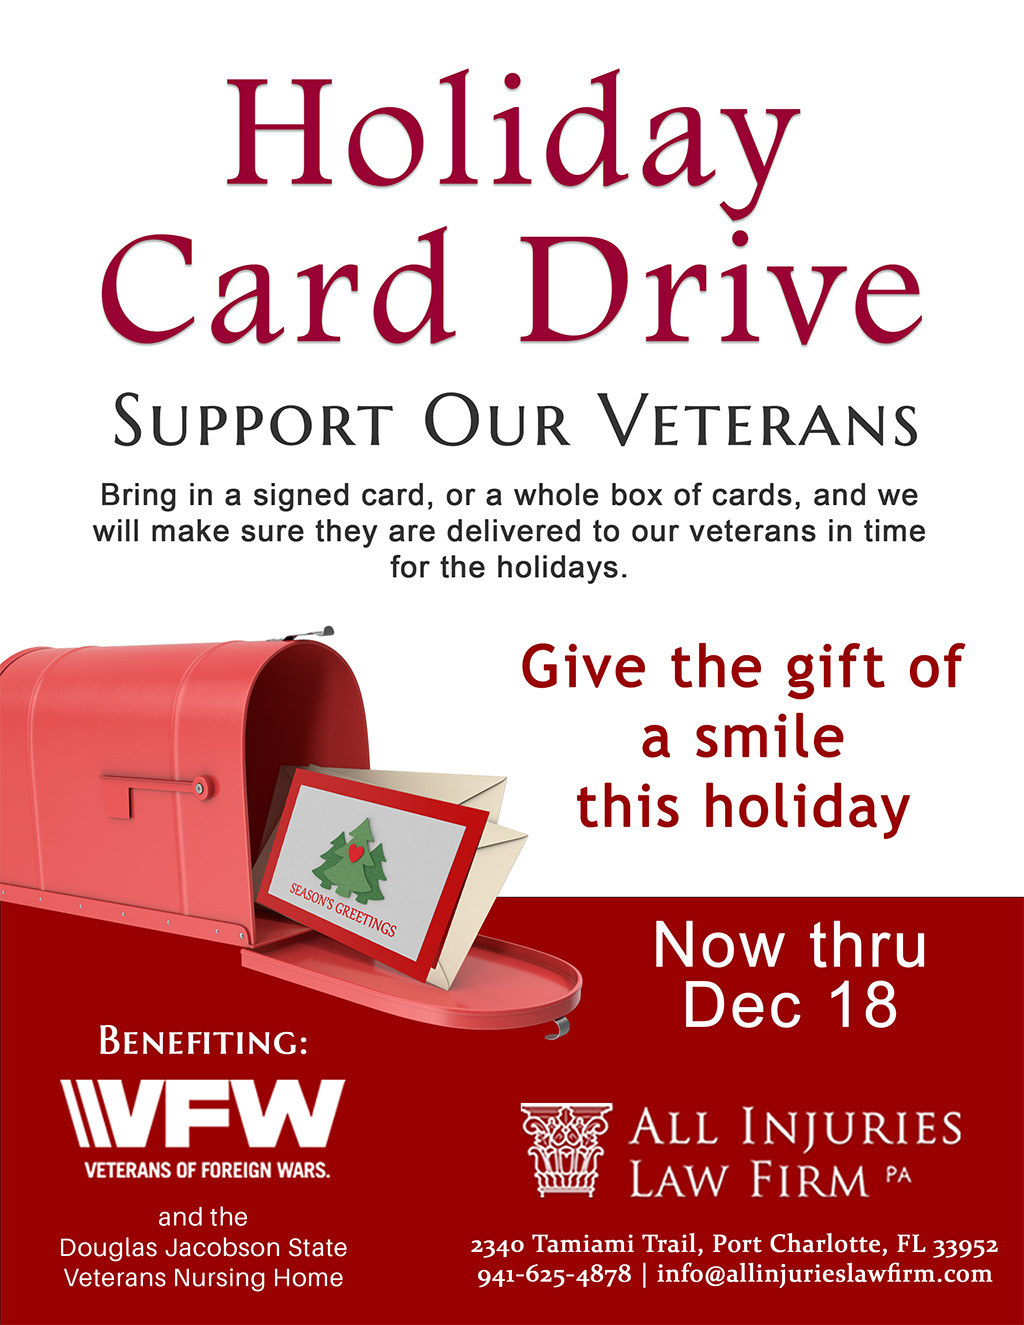 All Injuries Holiday Card Drive To Support Our Veterans